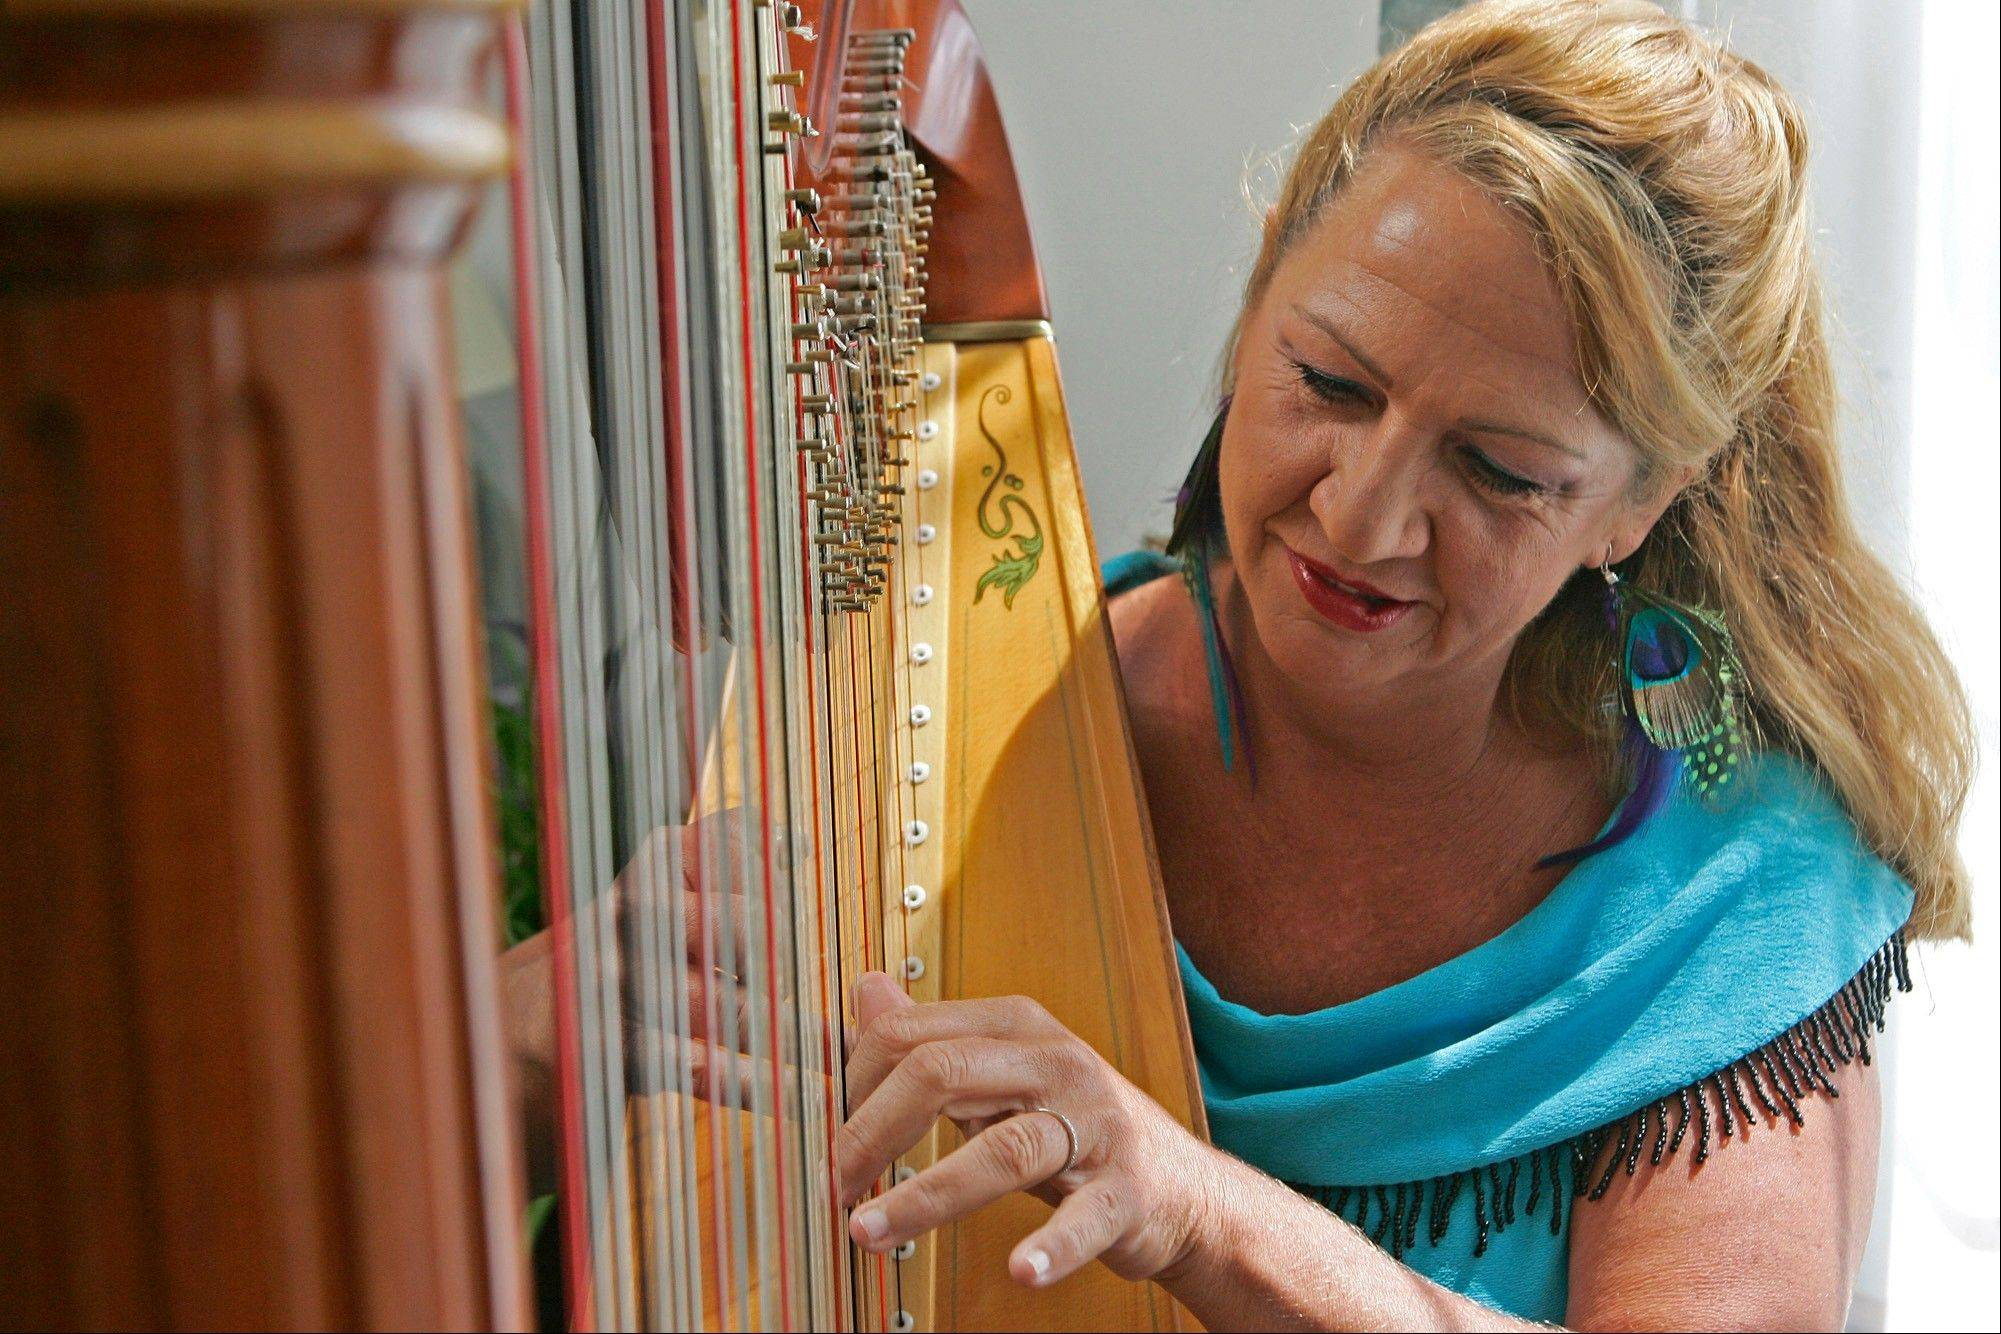 Harpist Nanette Felix plays one of her many harps at her home in Machesney Park.